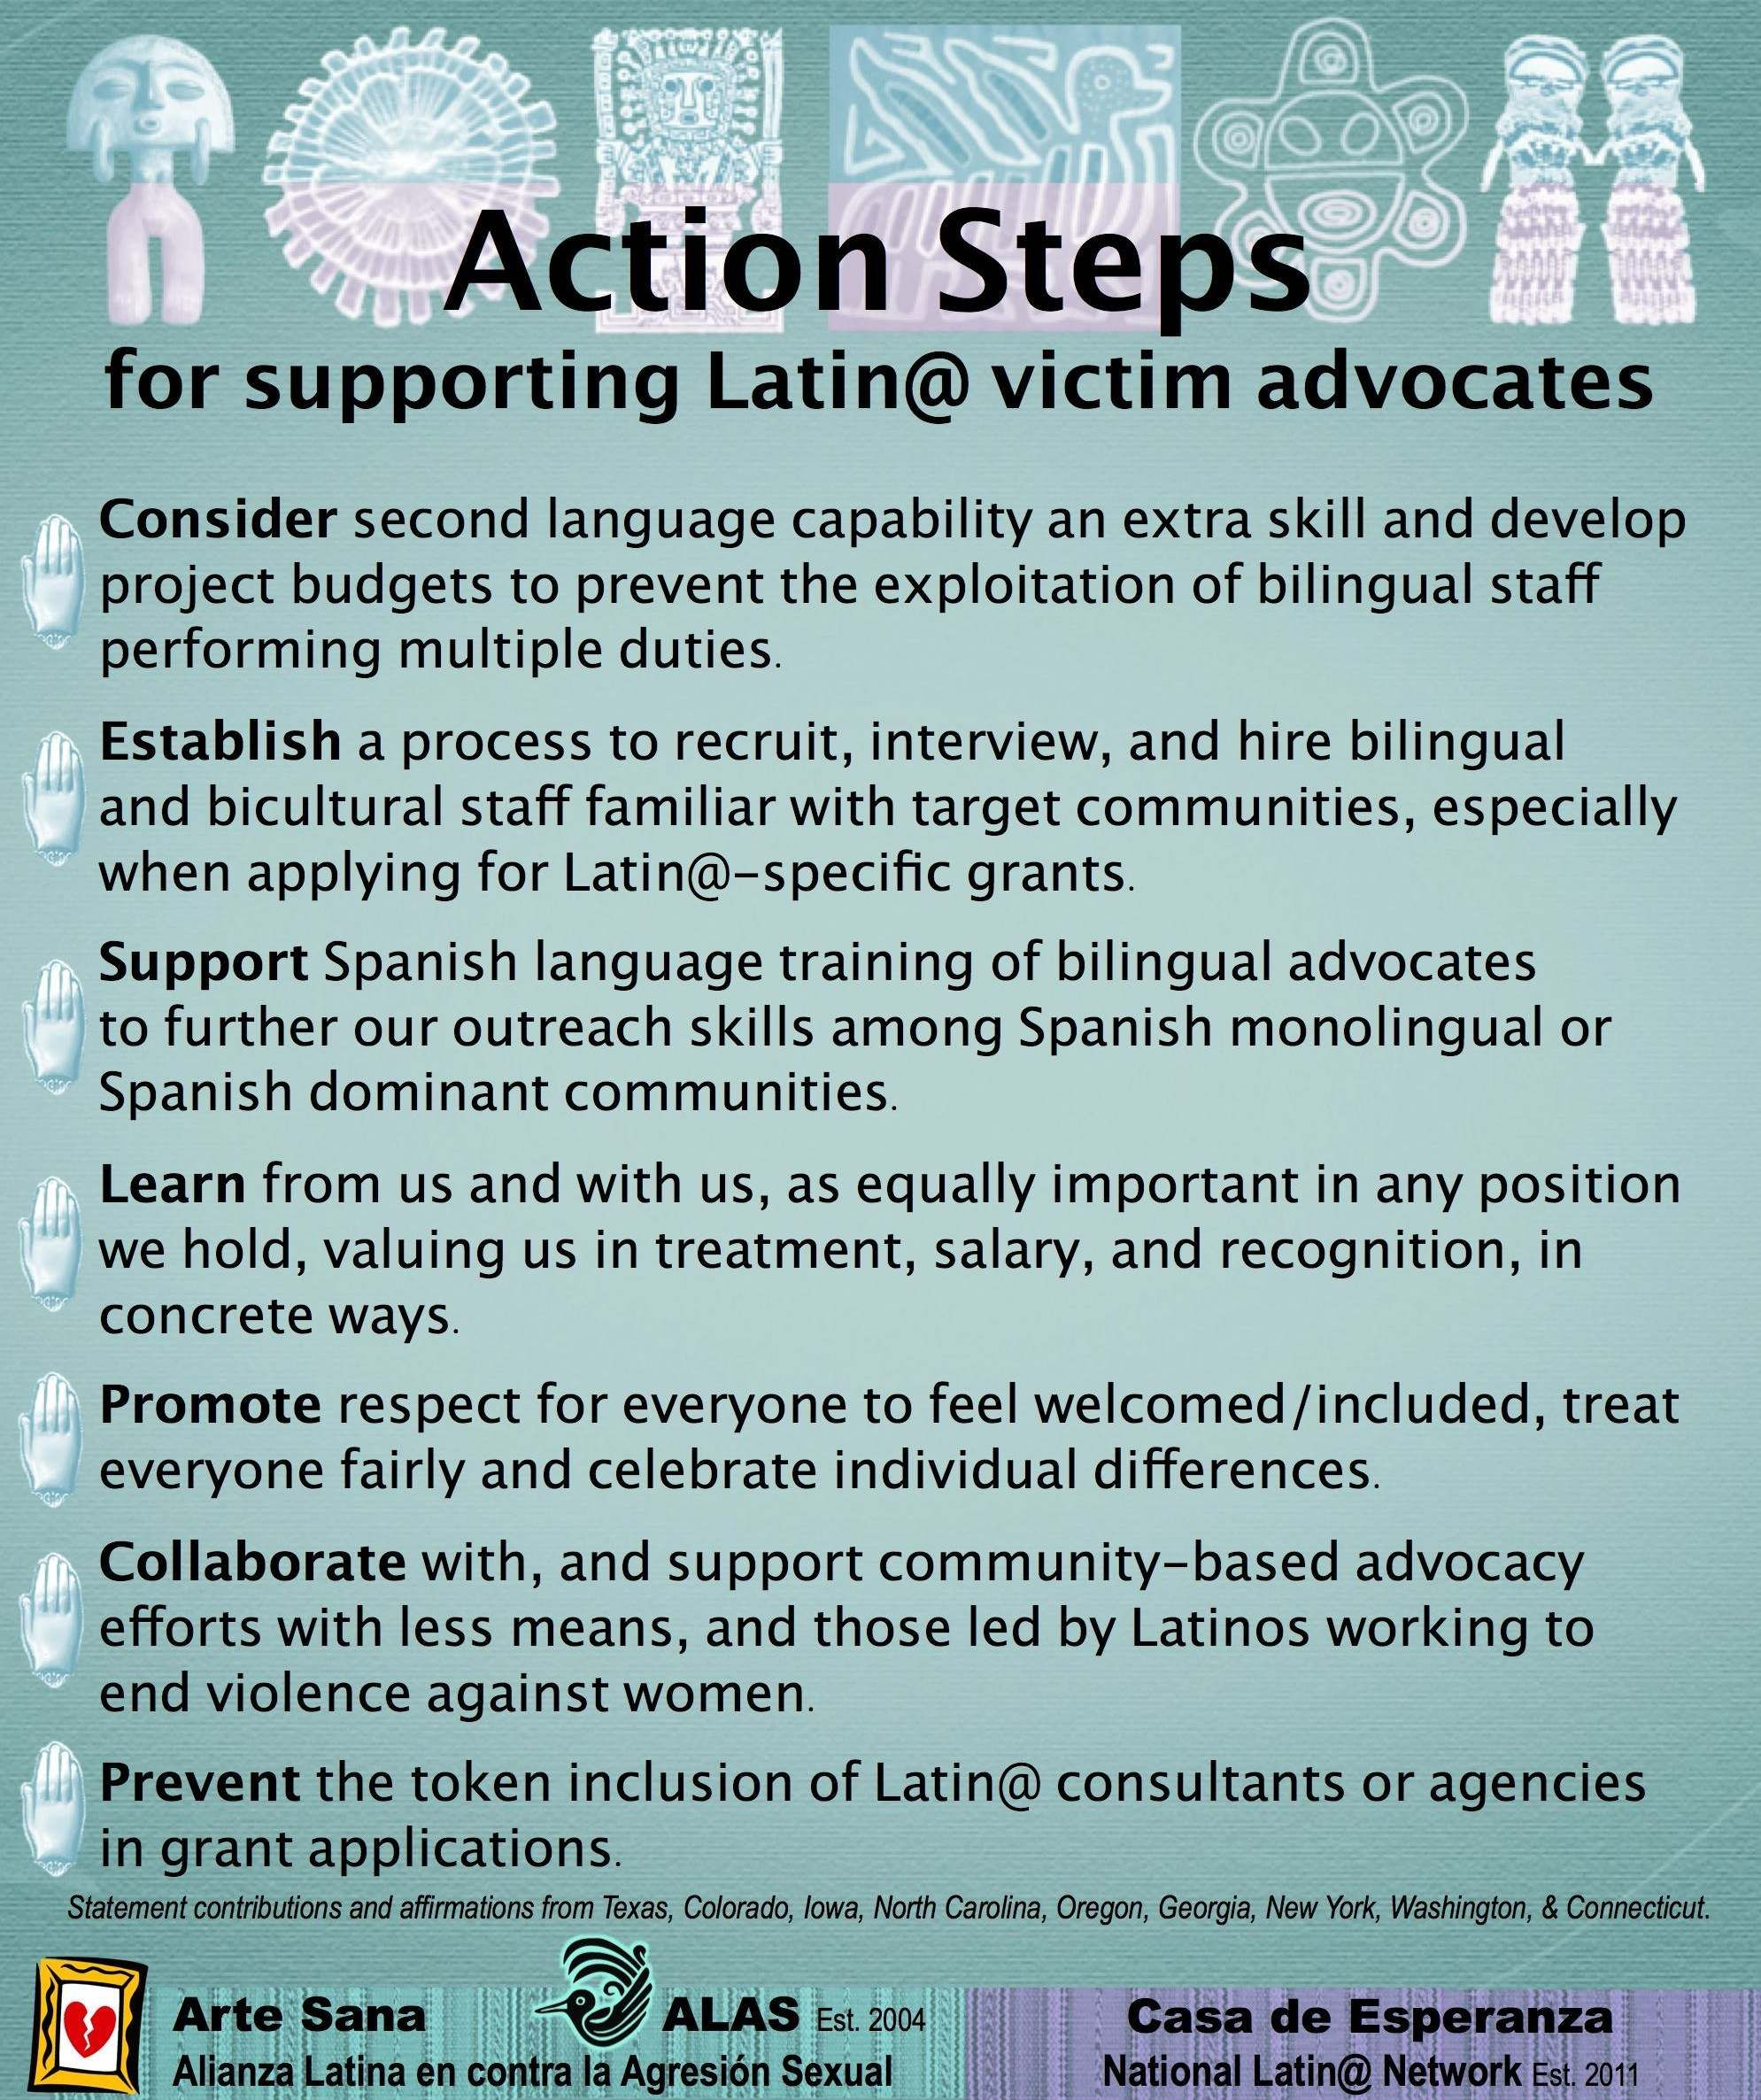 Action Steps For Supporting Latin Victim Advocates Via Arte Sana